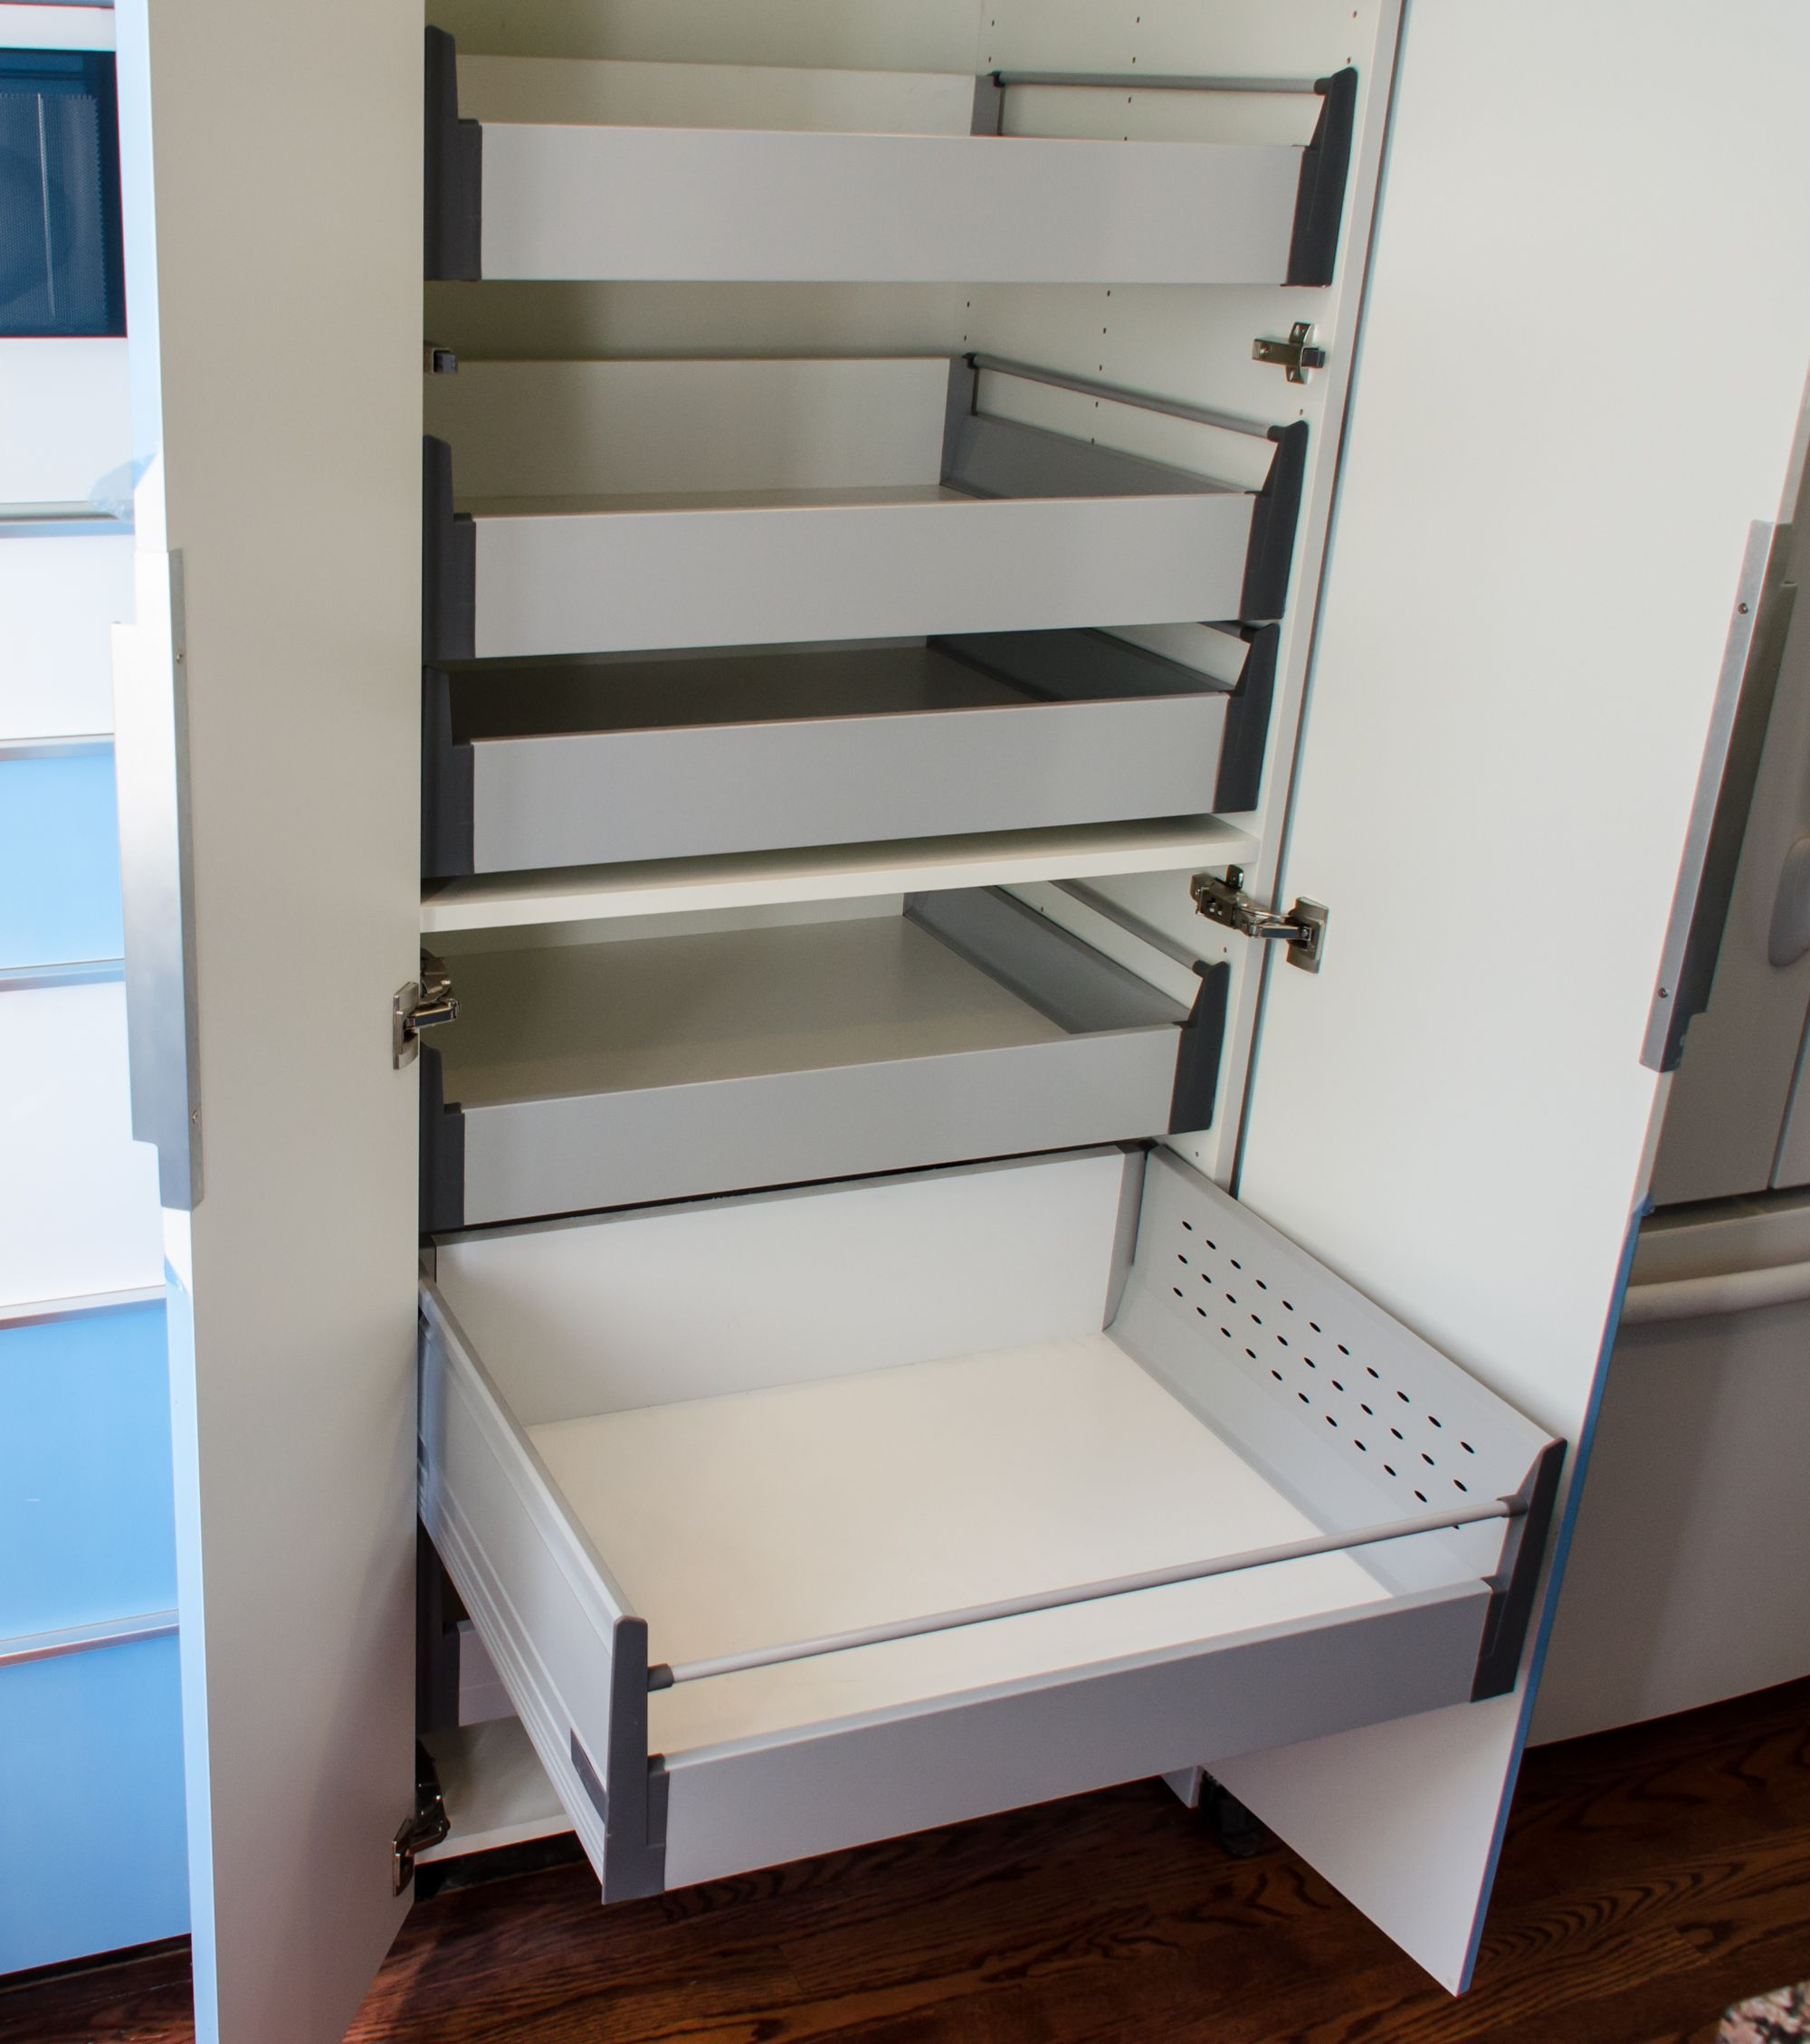 Ikea Cabinets Yes Or No: IKEA Akurum High Cabinet Hack With Sliding Shelves. Slide